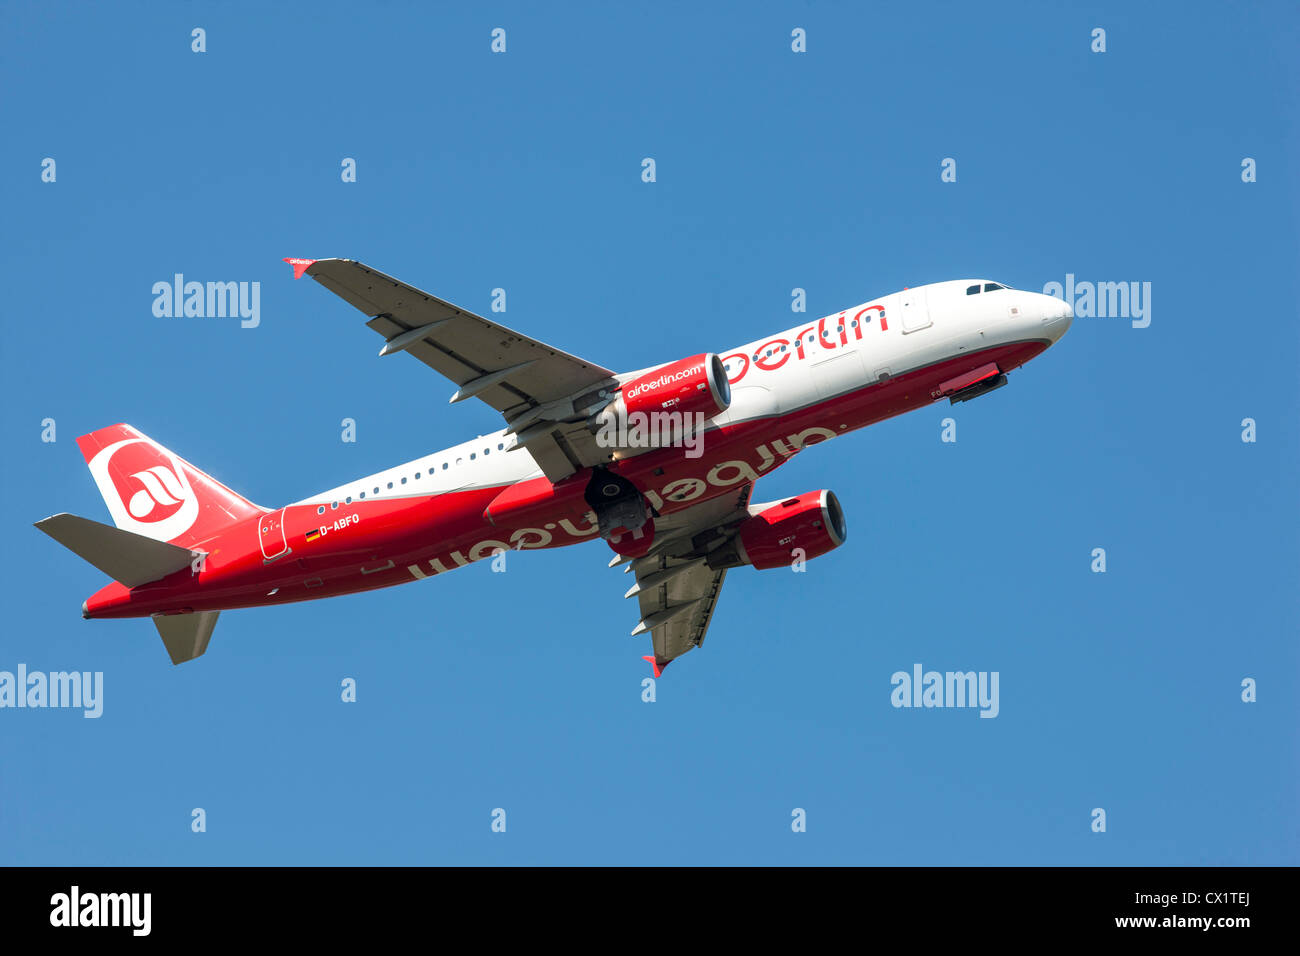 Passenger jet plane taking off from Düsseldorf International Airport. Air Berlin, Airbus A320-214, - Stock Image